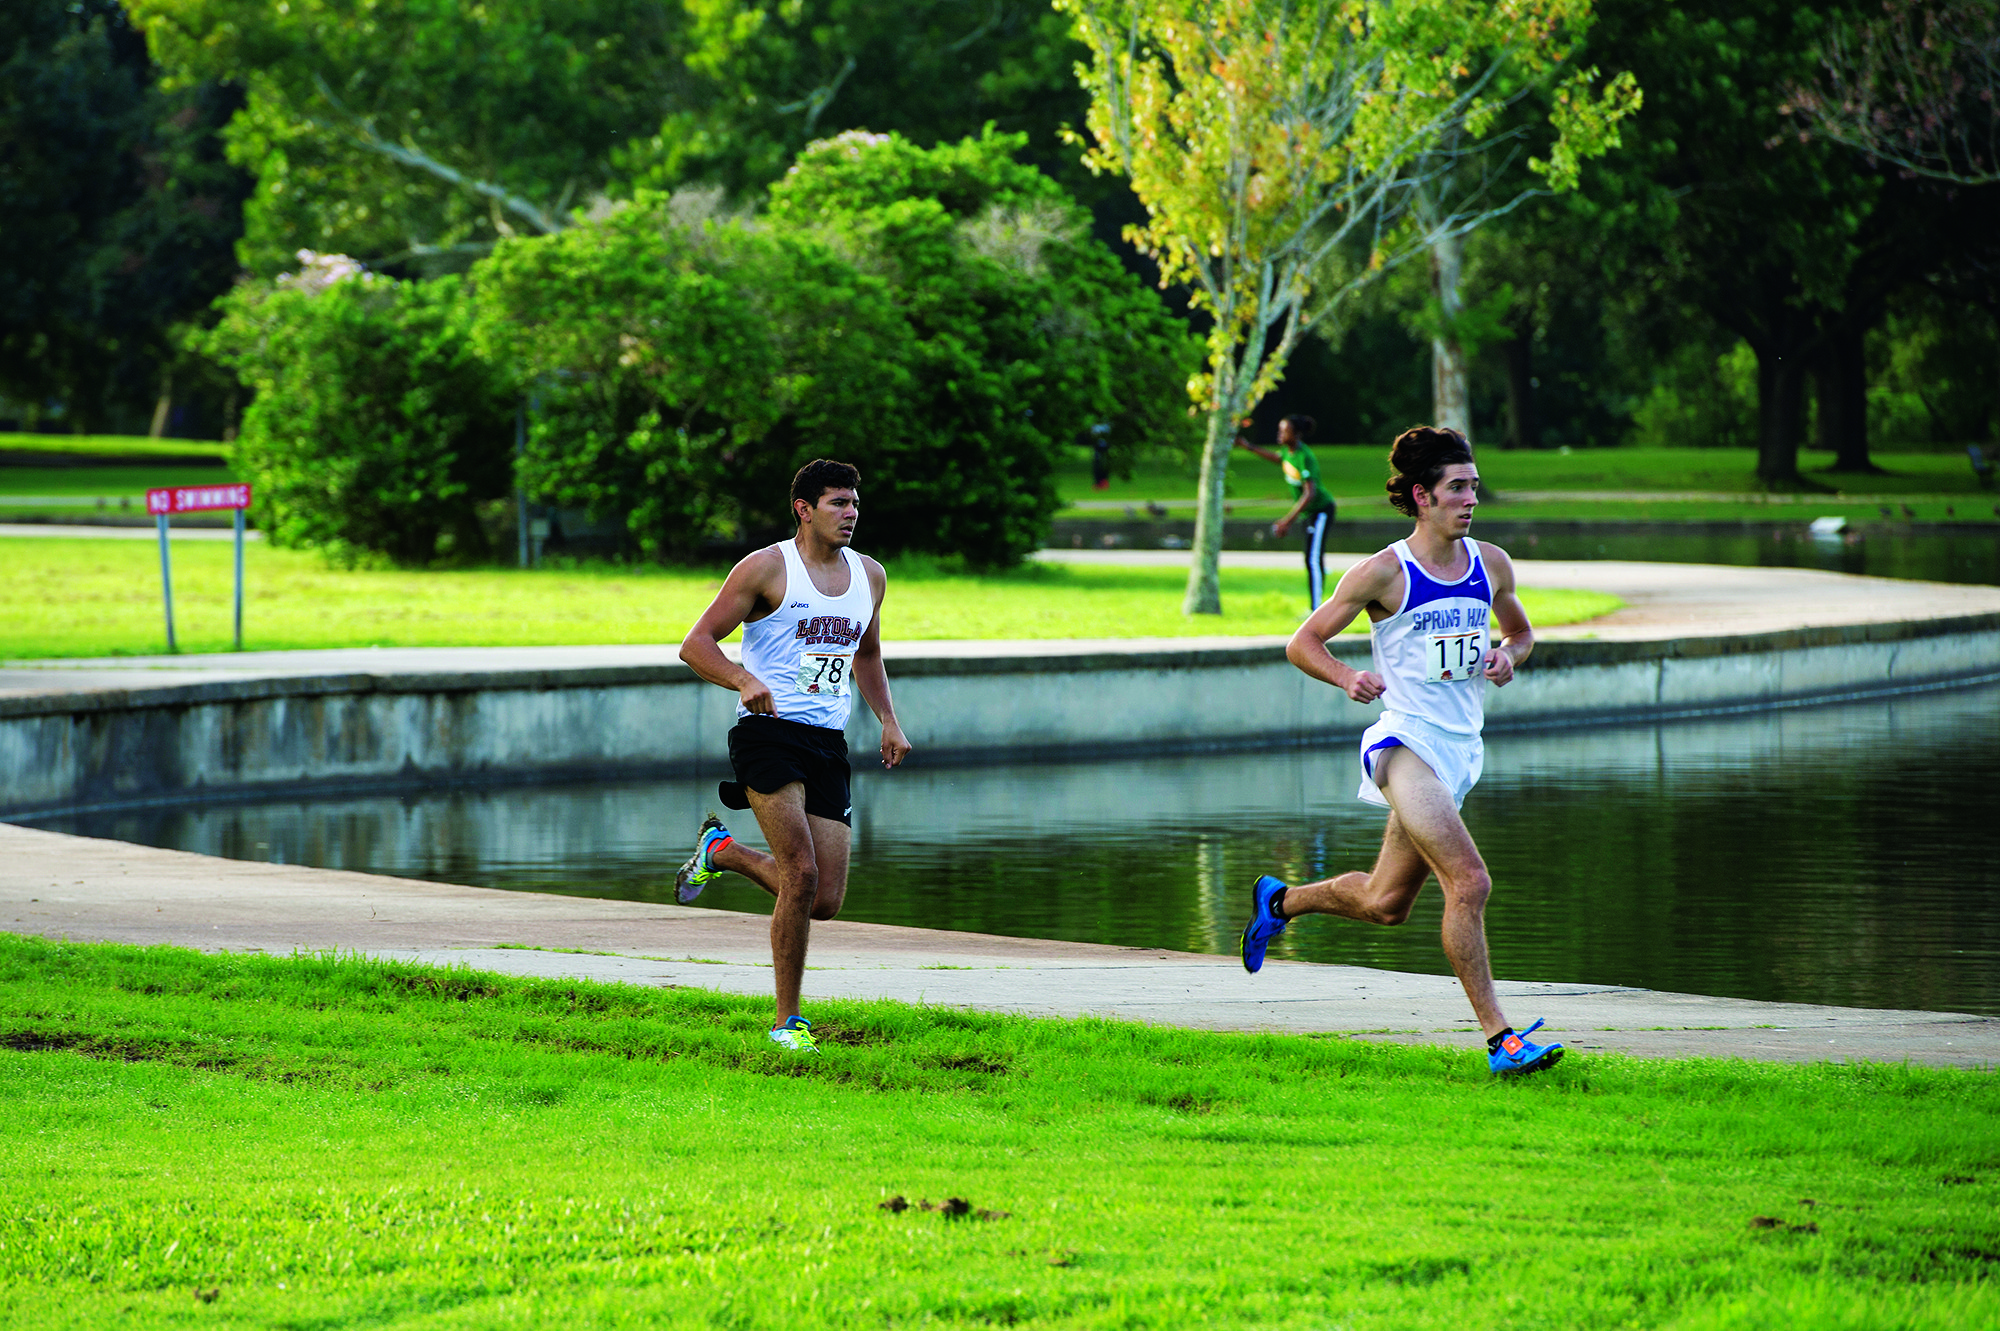 Anthony Rizzi leads the pack for cross country team